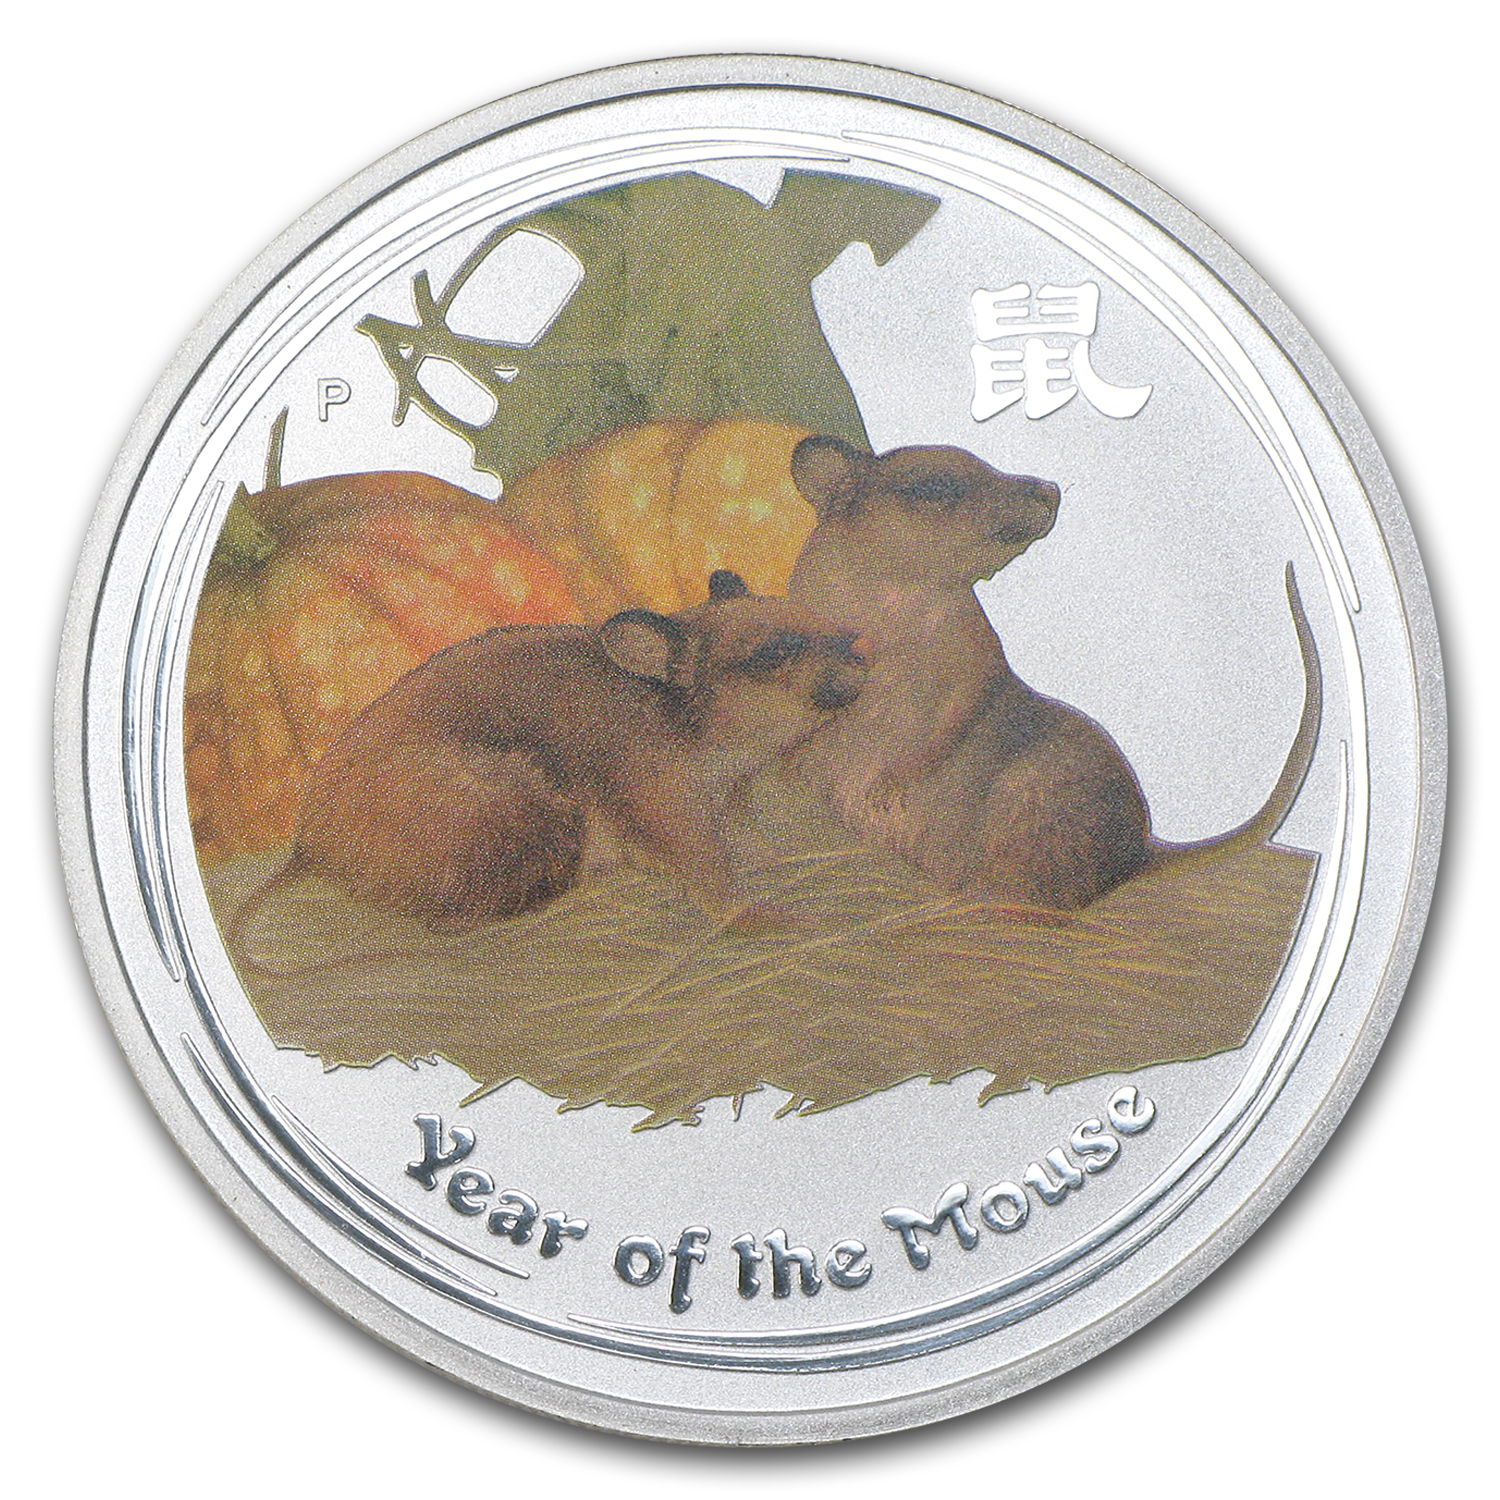 2008 Year of the Mouse 1 oz Silver Coin (SII) (Colorized)